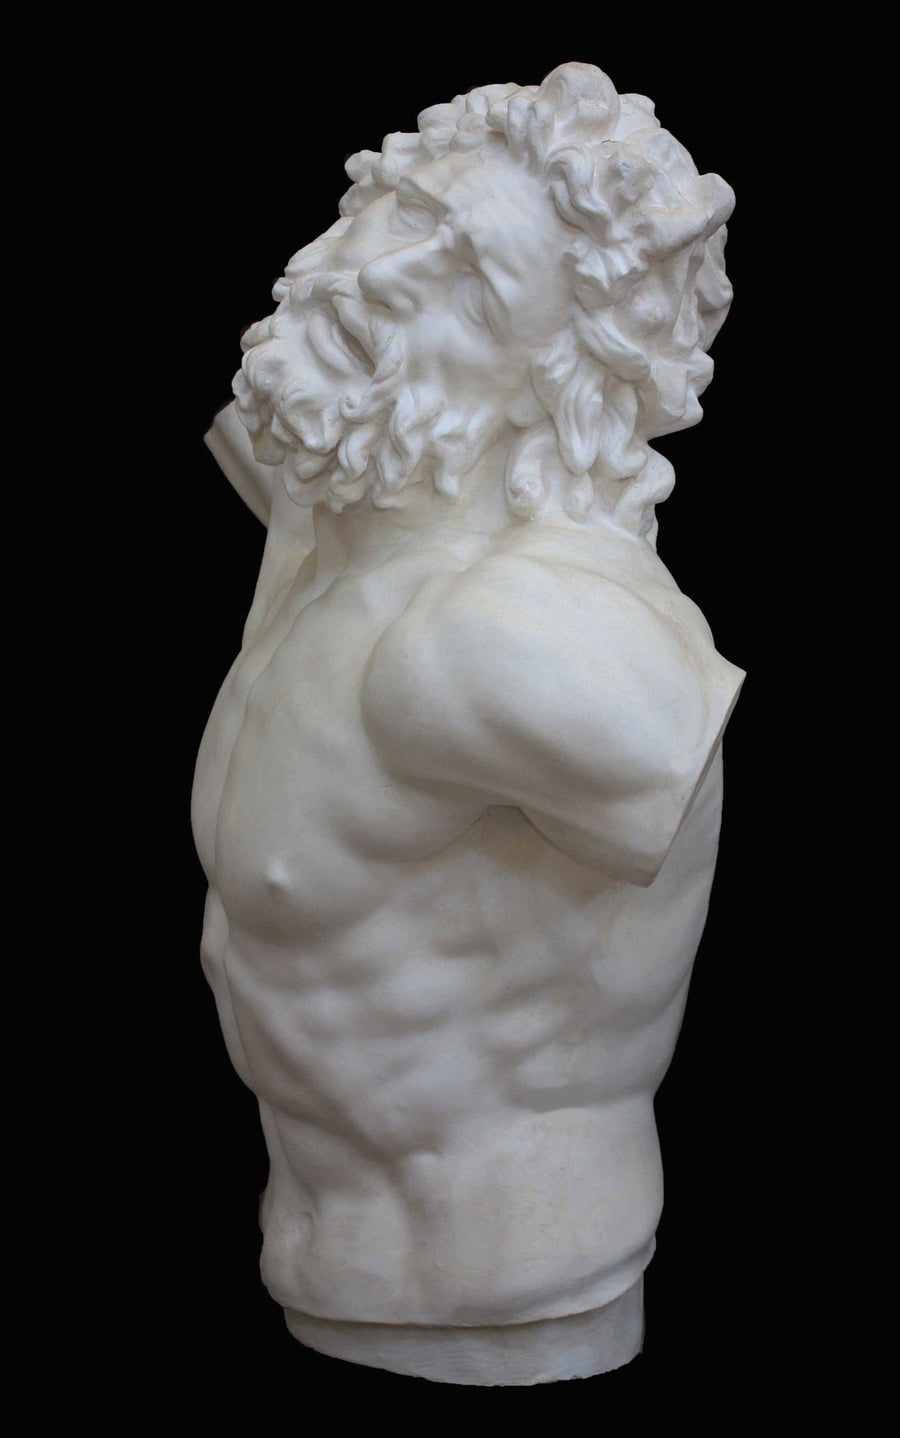 photo with black background of plaster cast of sculpted male torso and head with curly hair and beard, namely Laocoon